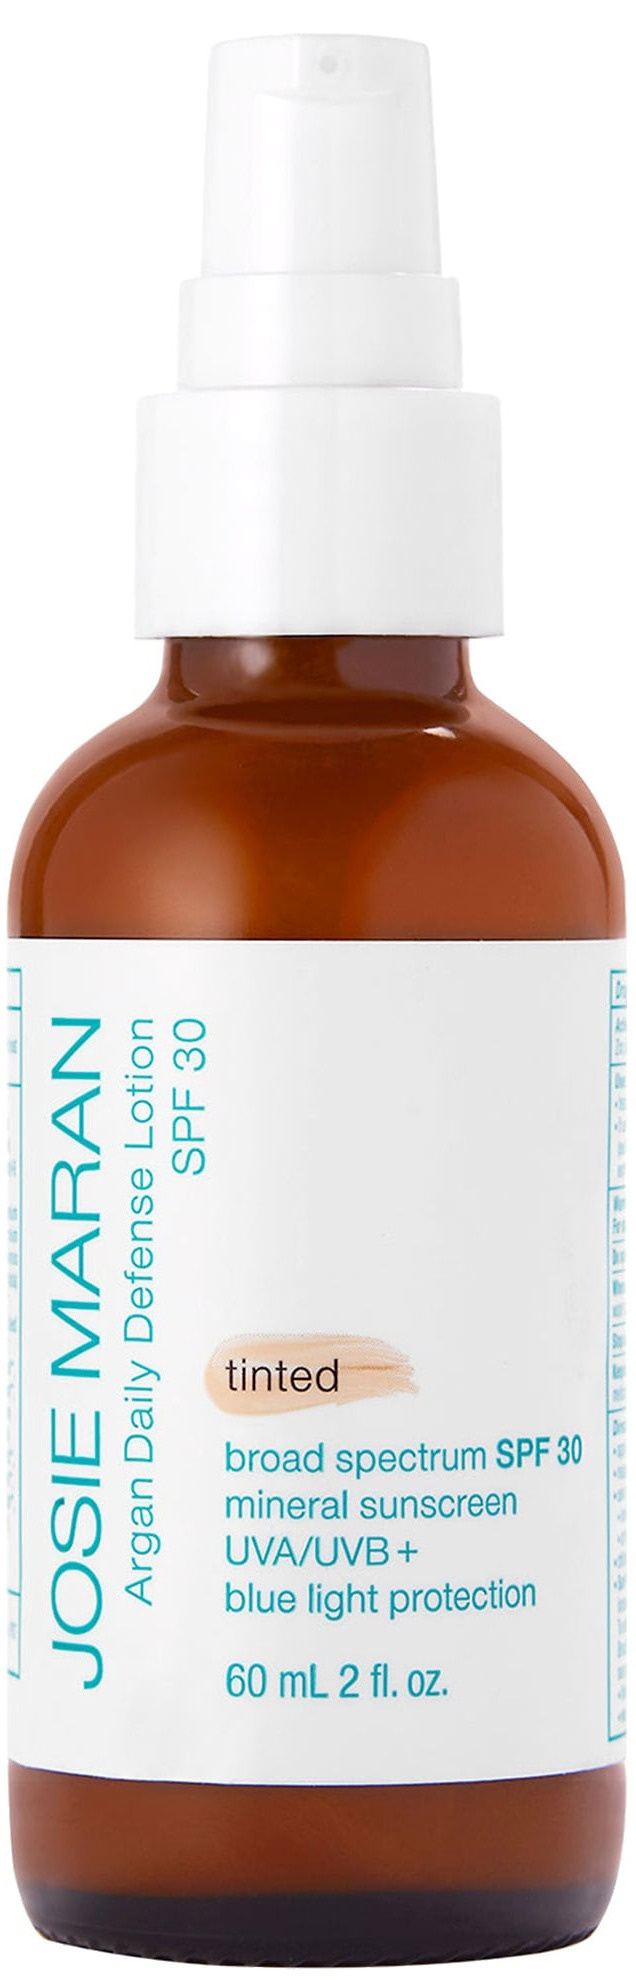 19.5% | Argan Daily Defense Lotion Spf30